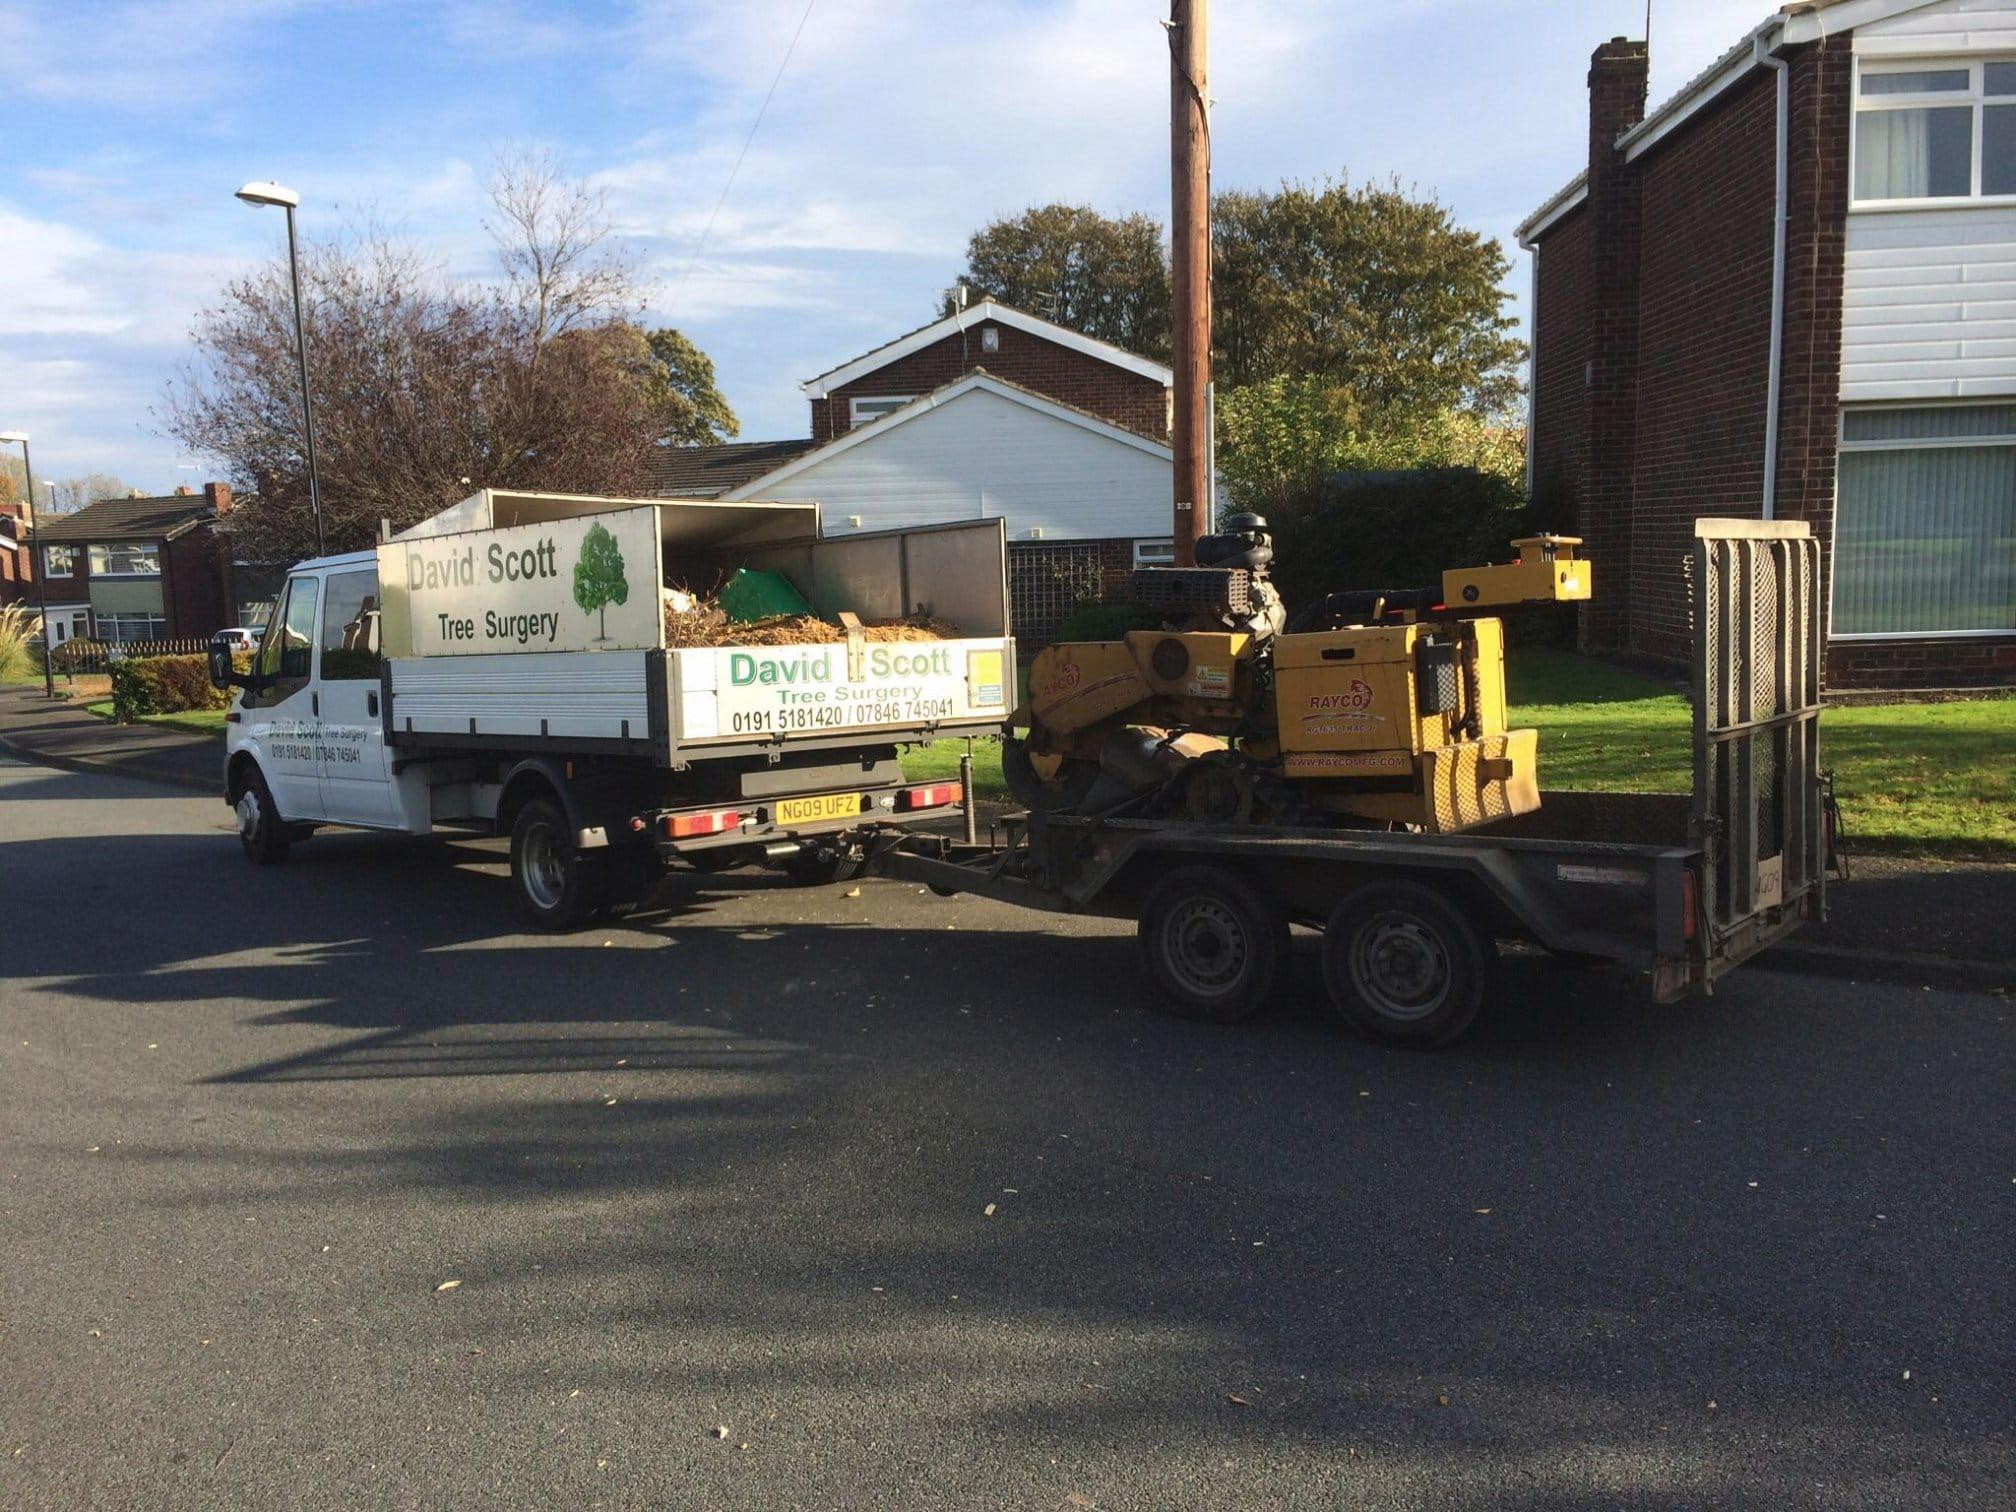 David Scott Tree Surgery & Garden Services